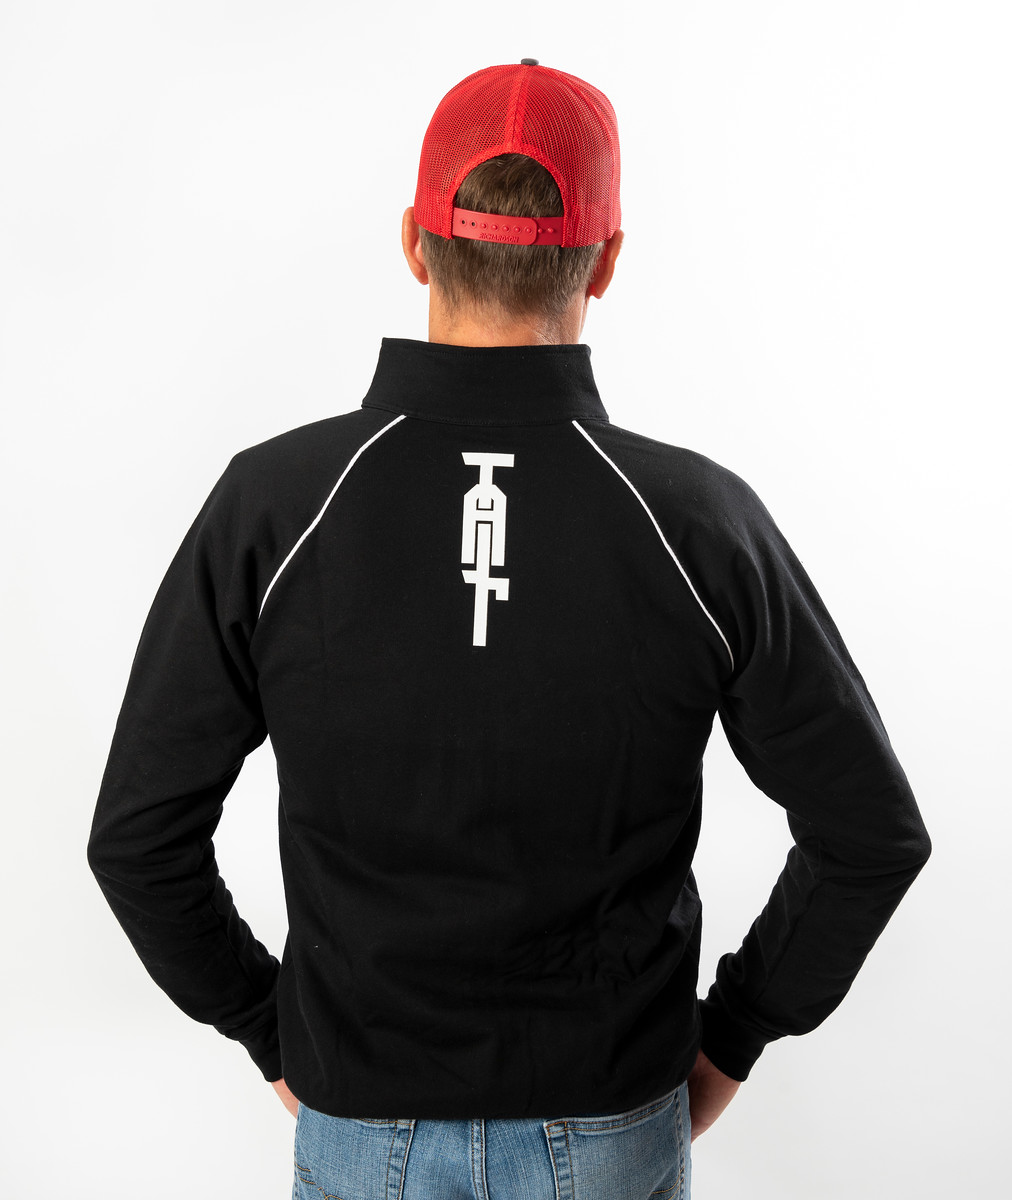 Tair Cycles Team Track Jacket